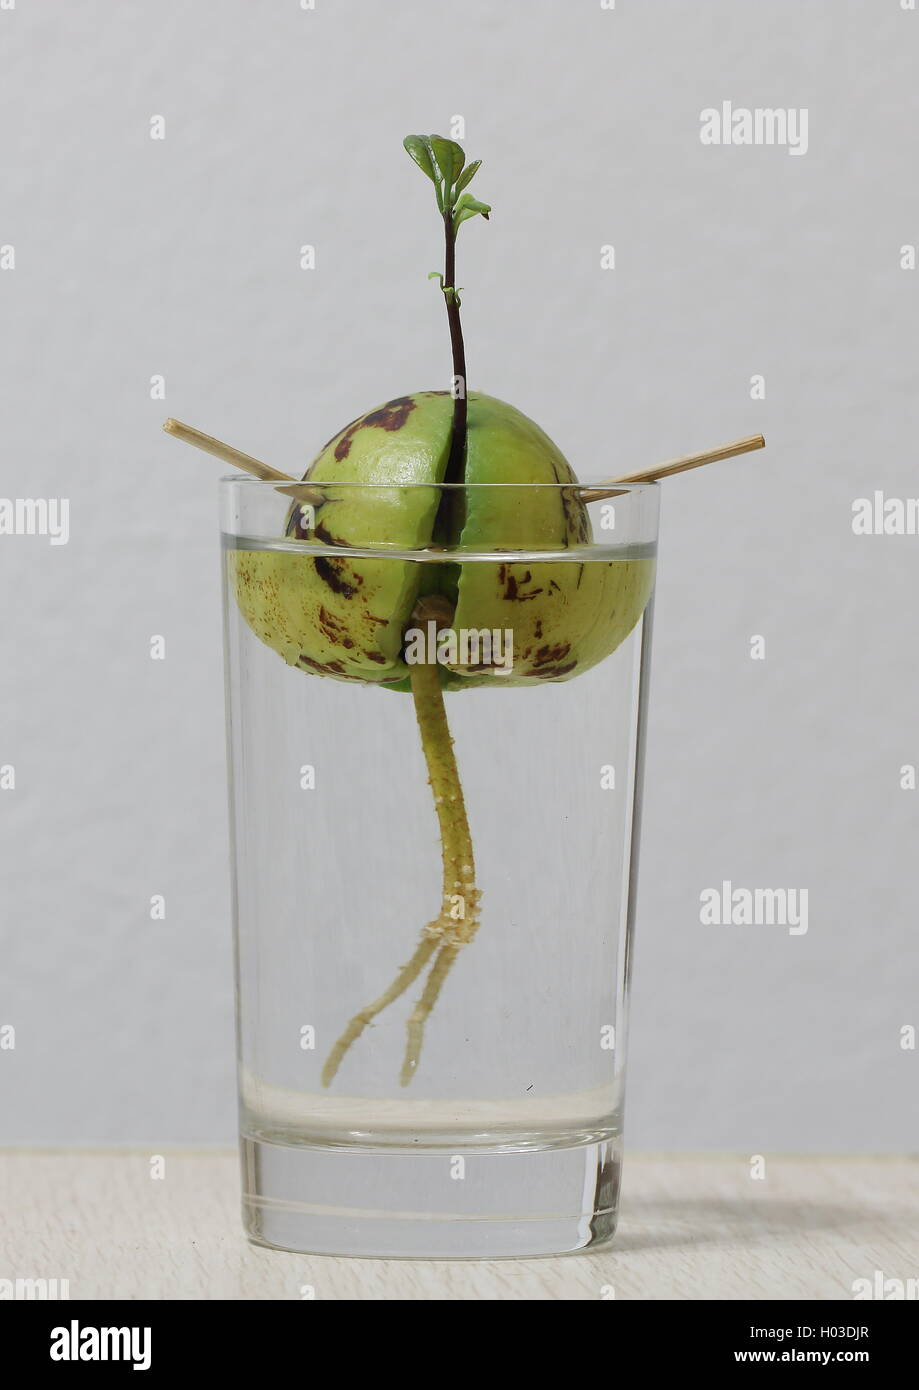 avocado seed with new sprouting and roots in a glass of water stock photo 120549151 alamy. Black Bedroom Furniture Sets. Home Design Ideas